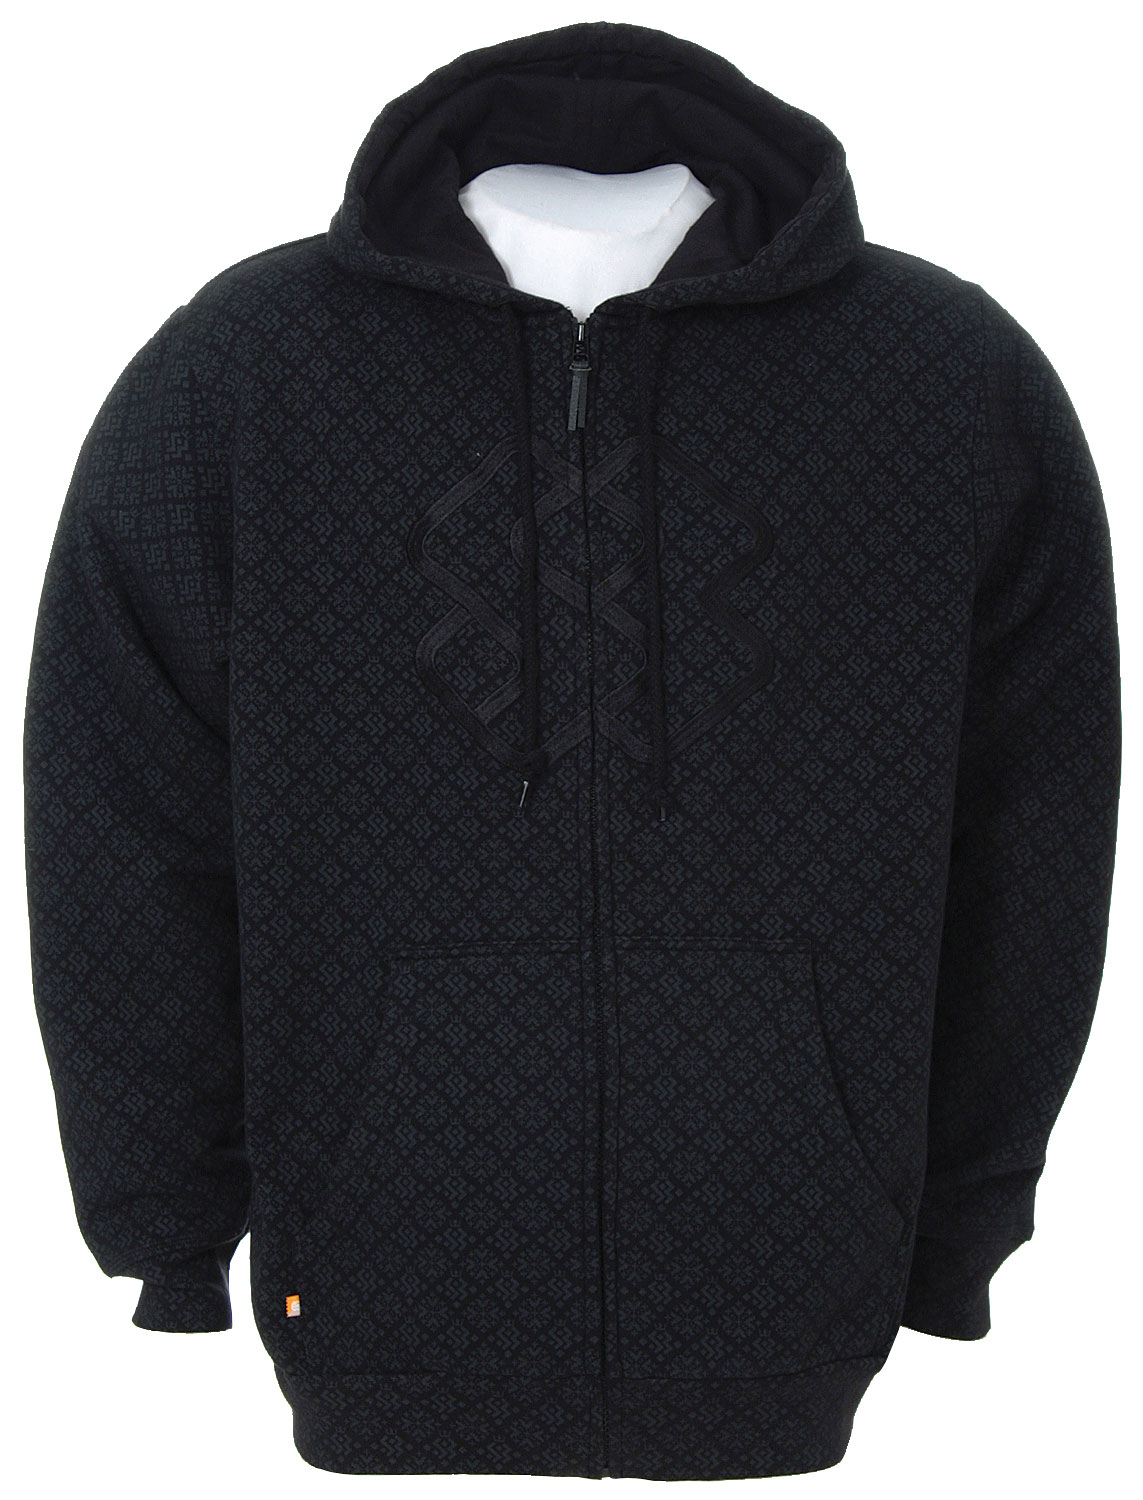 Key Features of the Special Blend Invader Zip Hoodie Black Invader: 80% Cotton/20% Polyester 360gm - $34.95